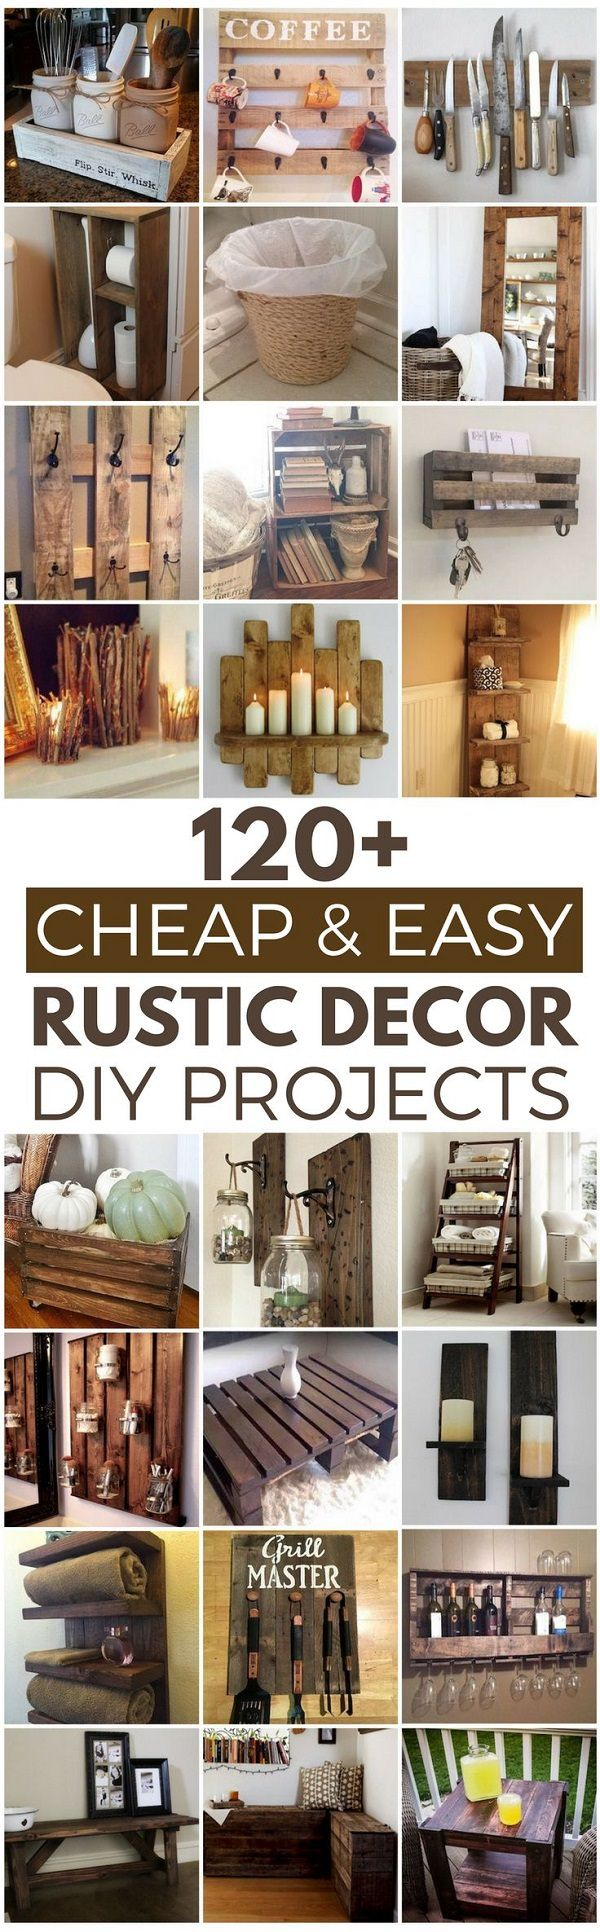 Best 25  Cheap room decor ideas on Pinterest   Diy room decor for college   Girl room decor and Cheap bedroom ideas. Best 25  Cheap room decor ideas on Pinterest   Diy room decor for